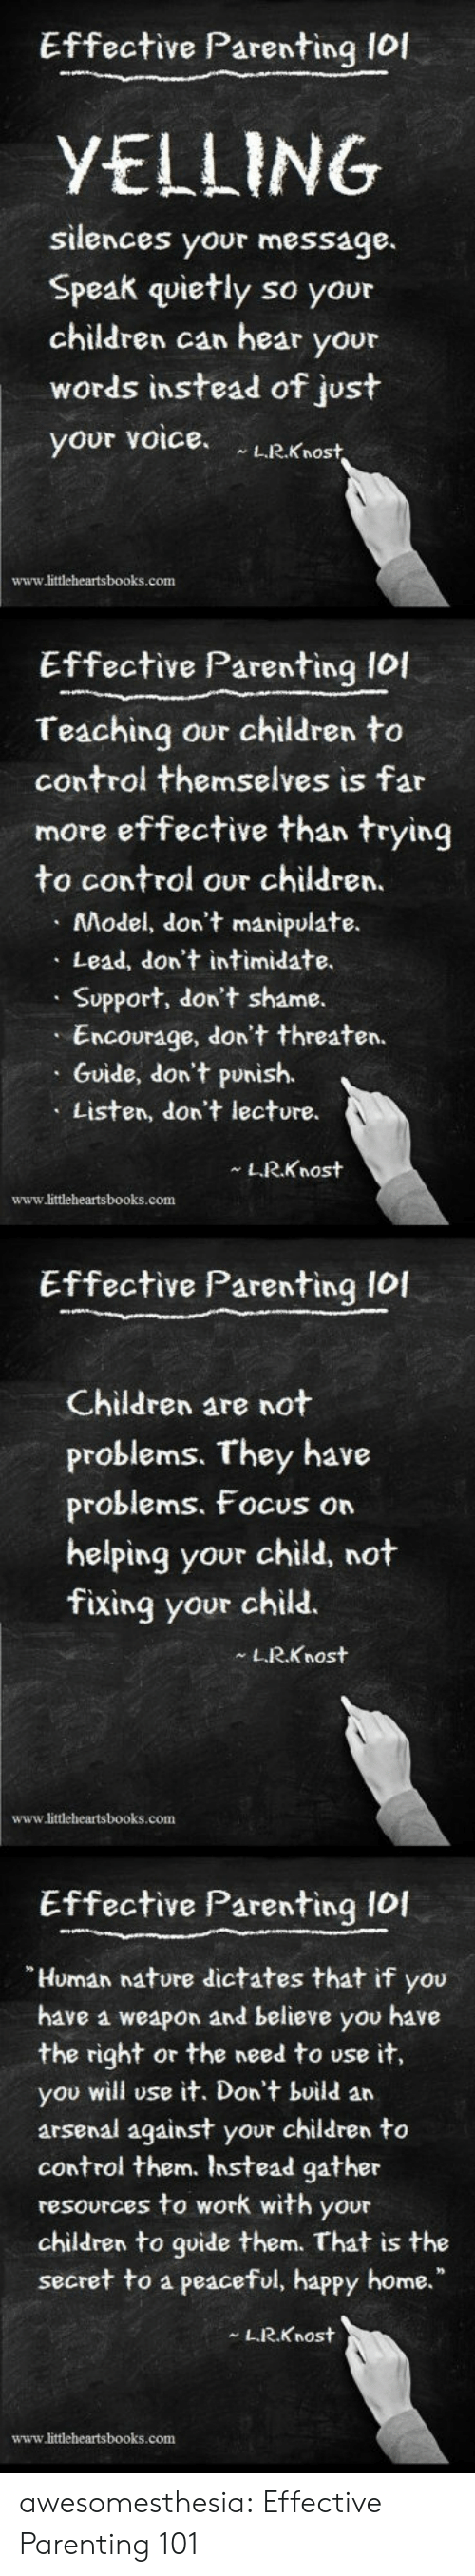 """Arsenal, Children, and Lol: Effective Parenting lof  YELLING  silences your message.  Speak quietly so your  children can hear your  words instead of just  your voice LRKnost  www.littleheartsbooks.conm  Effective Parenting lol  Teaching our children to  control themselves is far  more effective than trying  to control our children.  Model, don't manipulate.  Lead, don't intimidate.  Support, don't shame.  Encourage, don't threaten.  Guide, don't punish.  Listen, don't lecture.  L.R.Knost  www.littleheartsbooks.com  Effective Parenting Iol  Children are not  problems. They have  problems, Focus on  helping your child, not  fixing your child.  LRKnost  www.littleheartsbooks.com  Effective Parenting I0I  Human nature dictates that if you  have a weapon and believe you have  the right or the need to use it,  you will use it. Don't build an  arsenal against your children to  control them. Instead gather  resources to work with your  children to goide them. That is the  secret to a peaceful, happy home.""""  L.R.Knost  www.littleheartsbooks.com awesomesthesia:  Effective Parenting 101"""